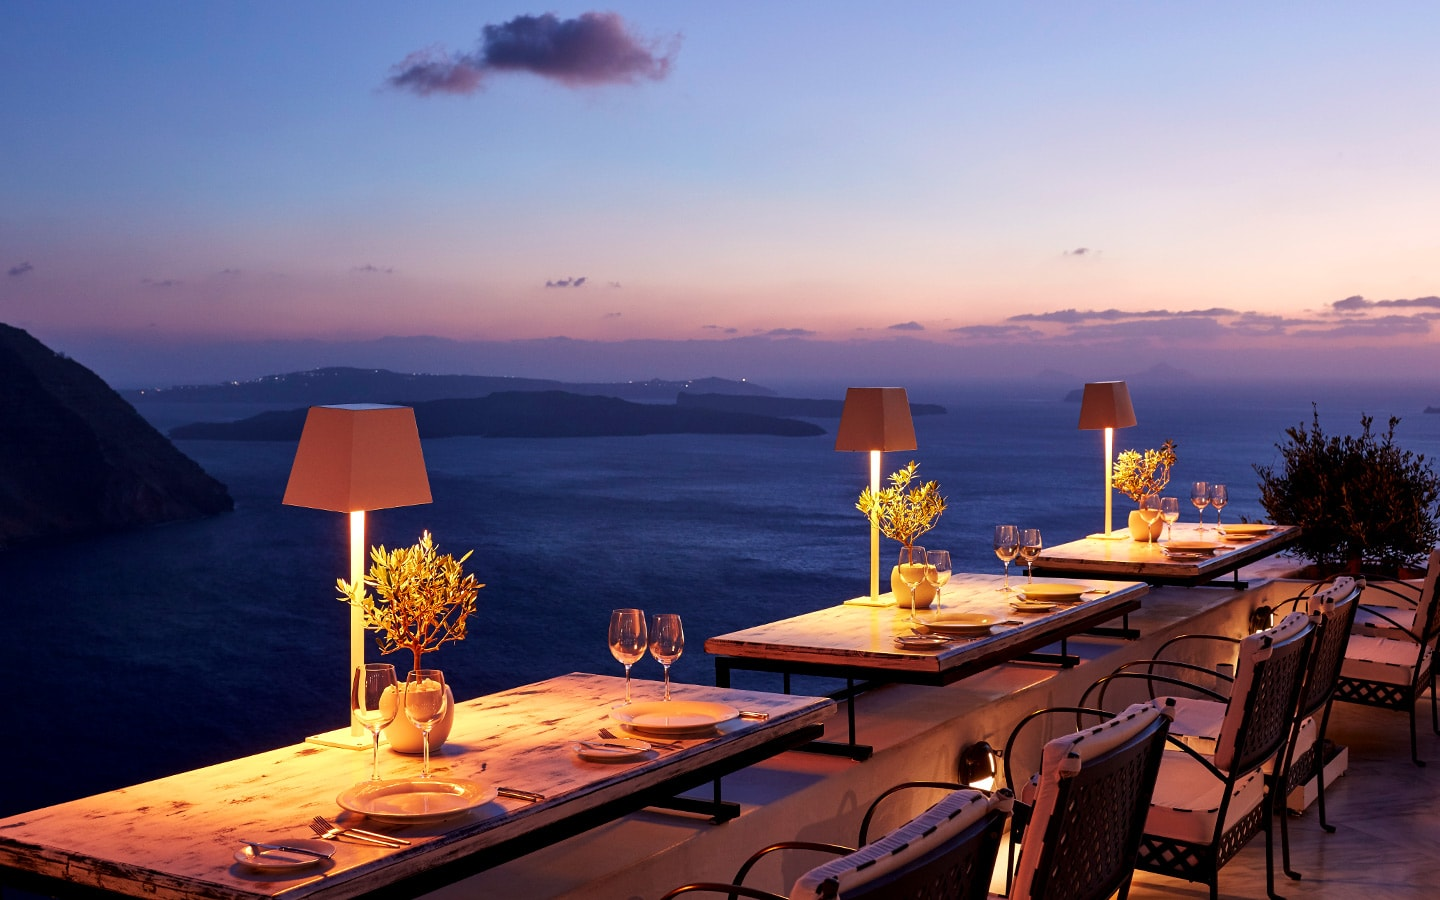 Cliffside Dinner Restaurant San Antonio Santorini Hotel 1440x900